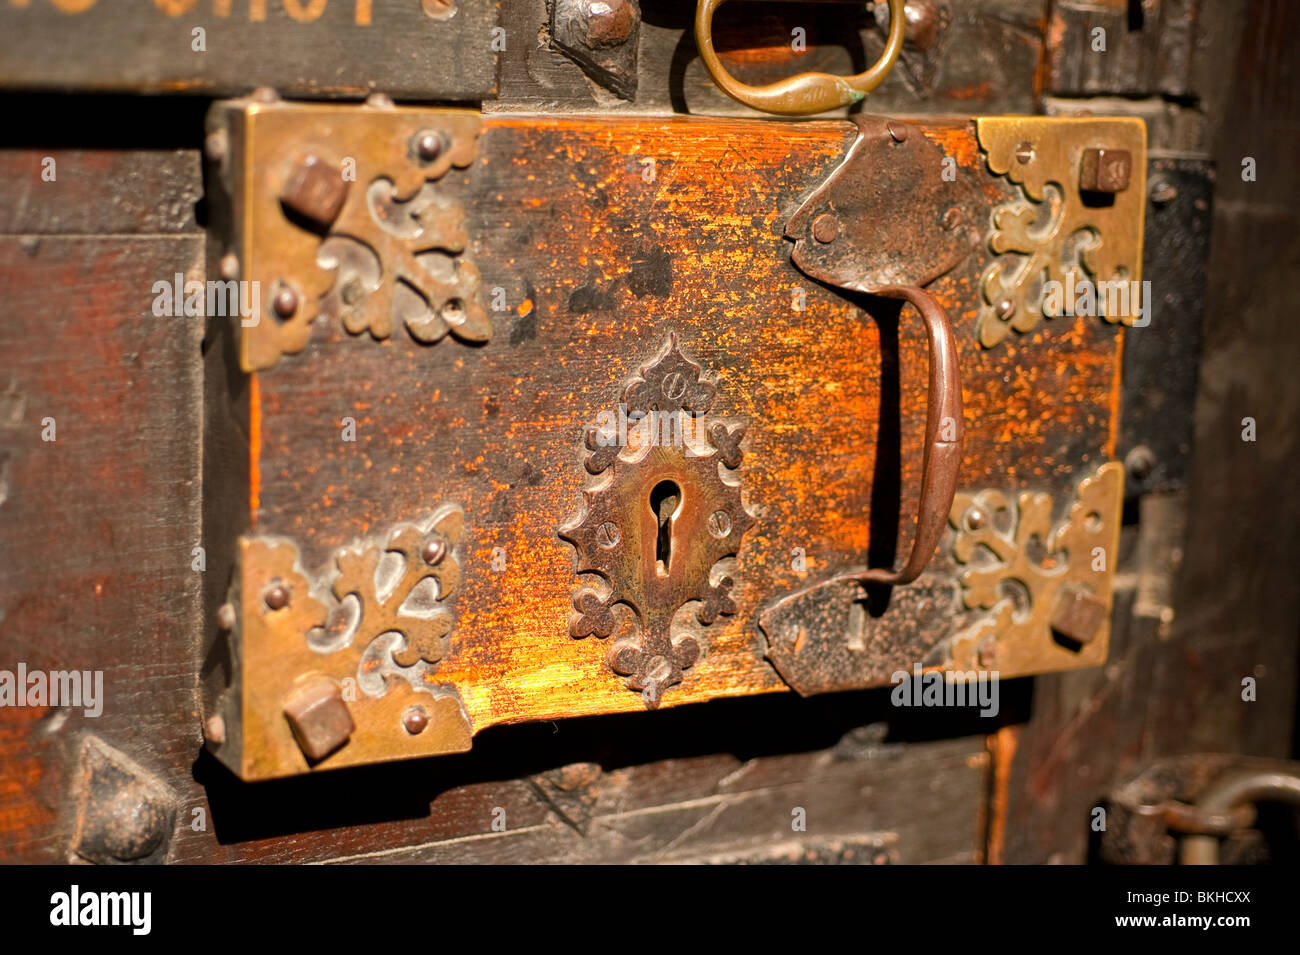 Charmant Old Cathedral Door Lock Escutcheon Plate Medieval   Stock Image